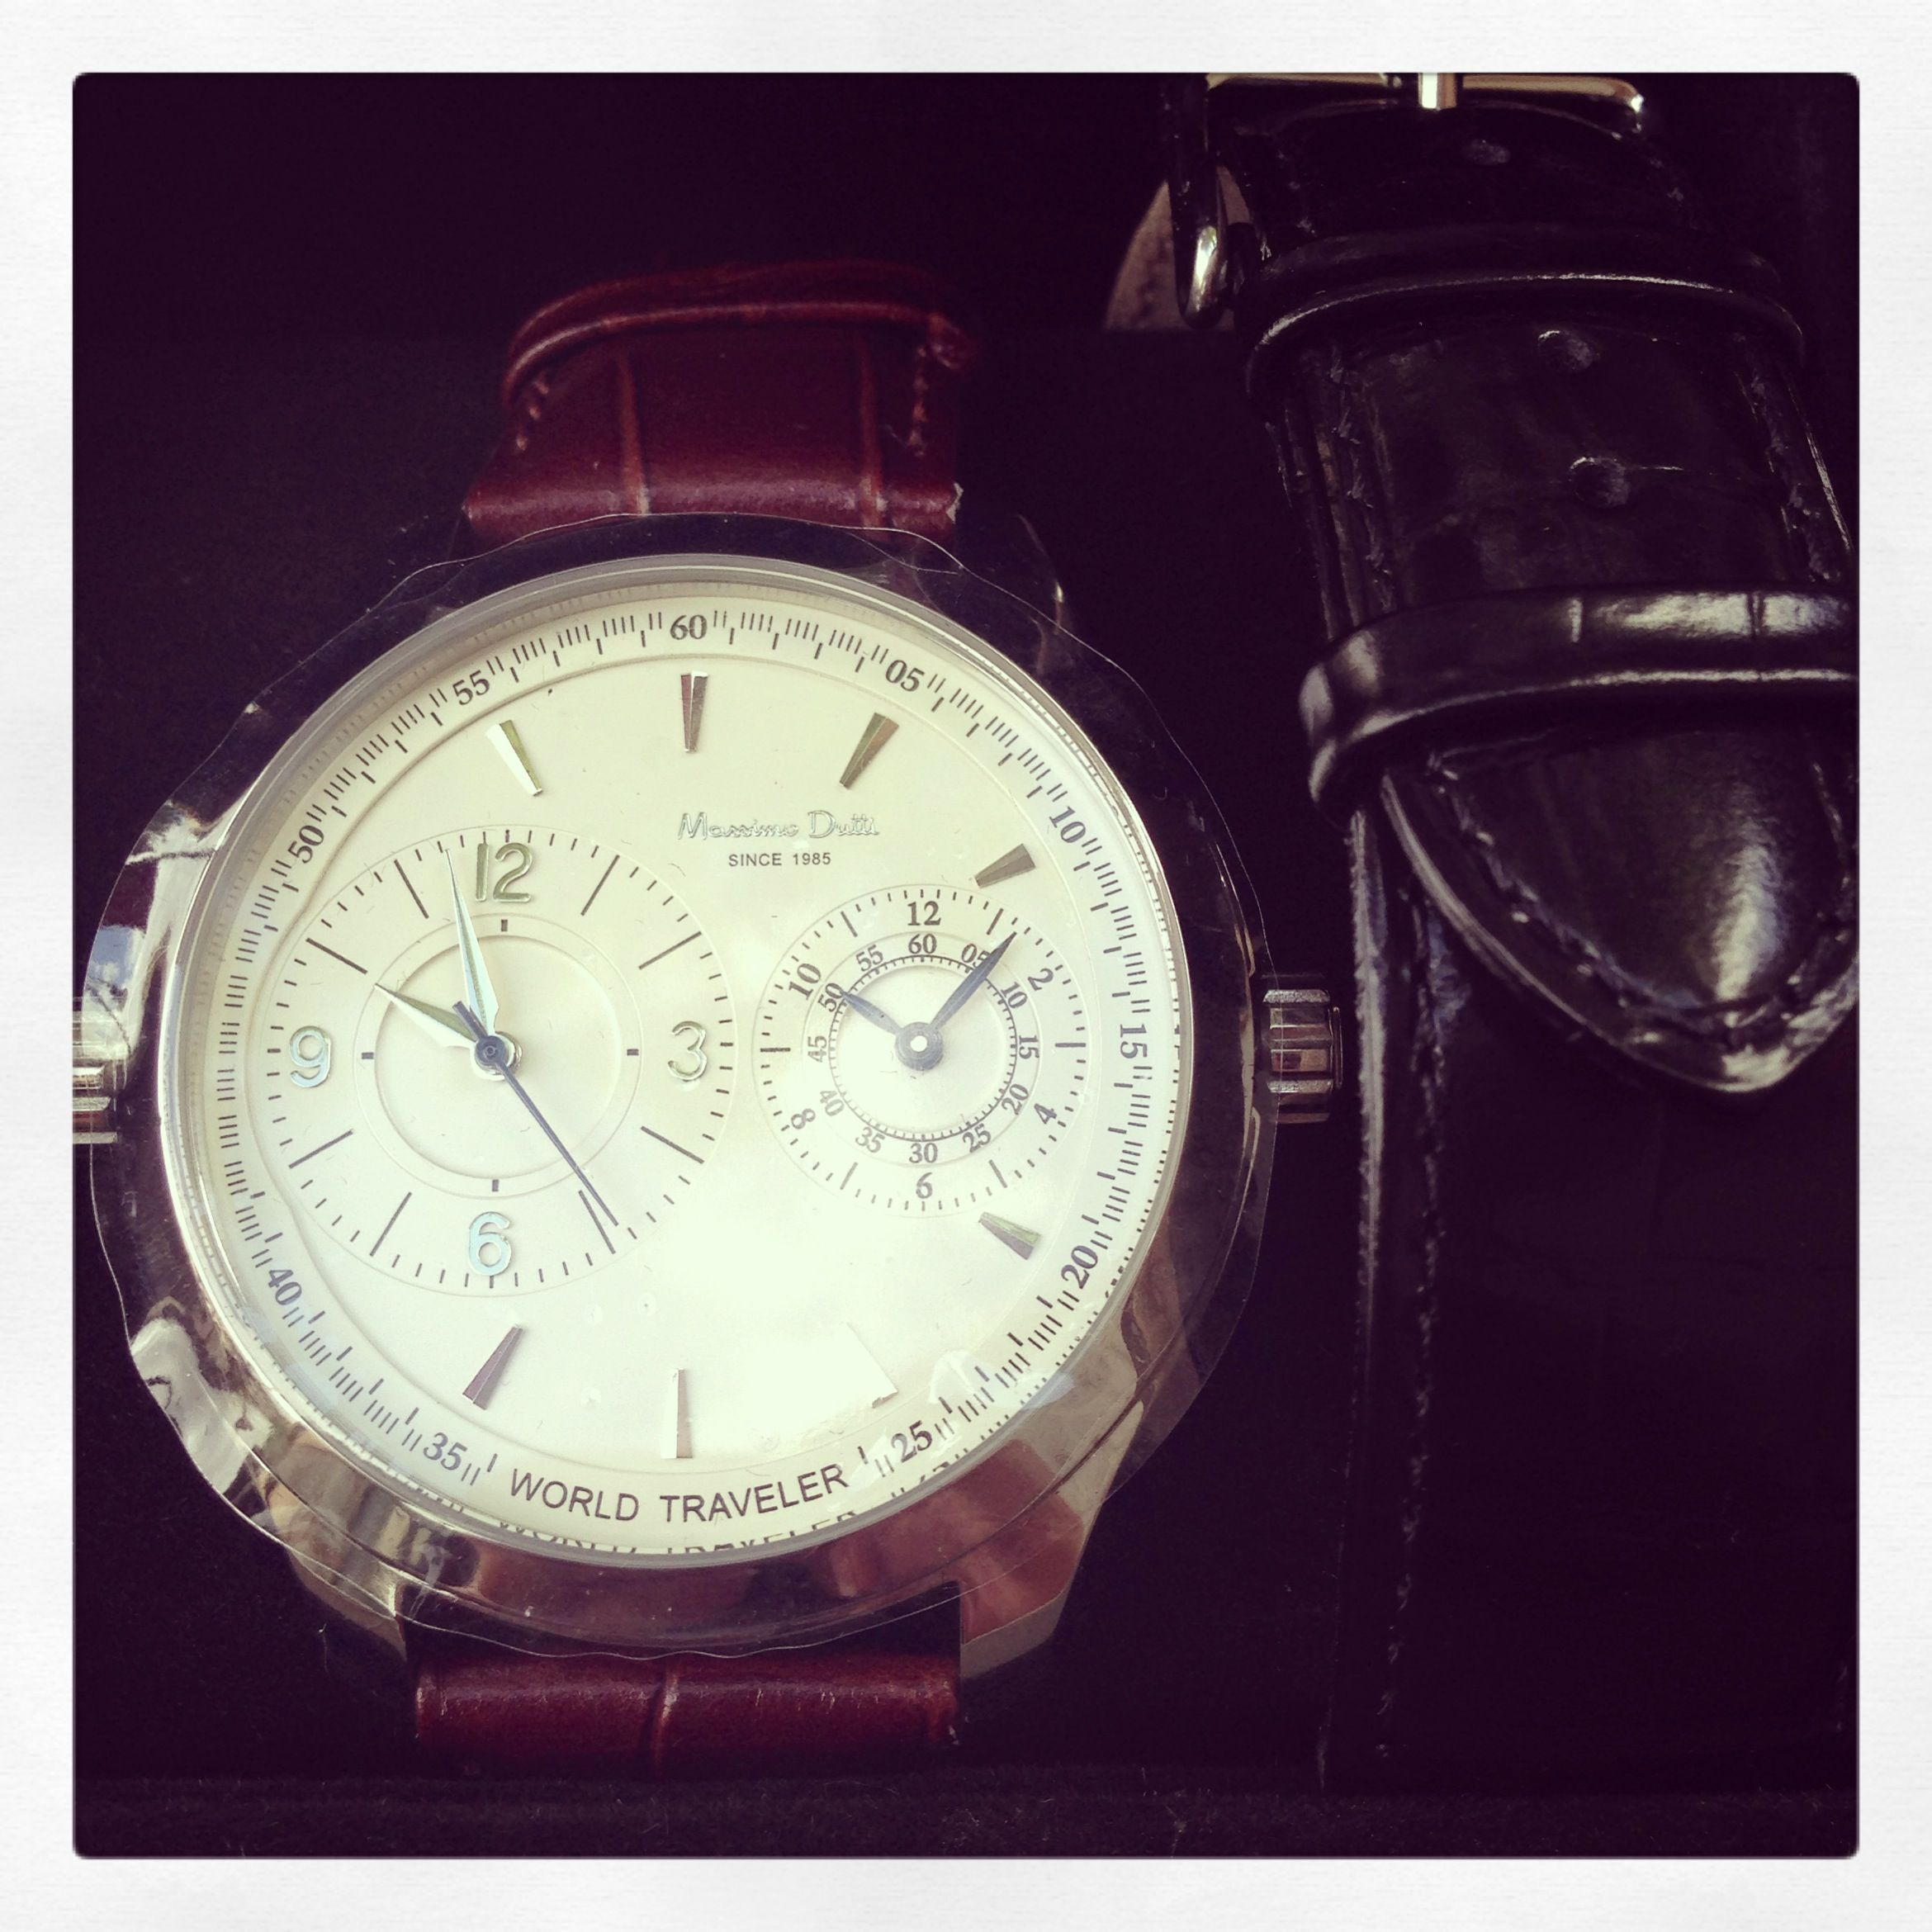 massimo dutti's men's watch / new love